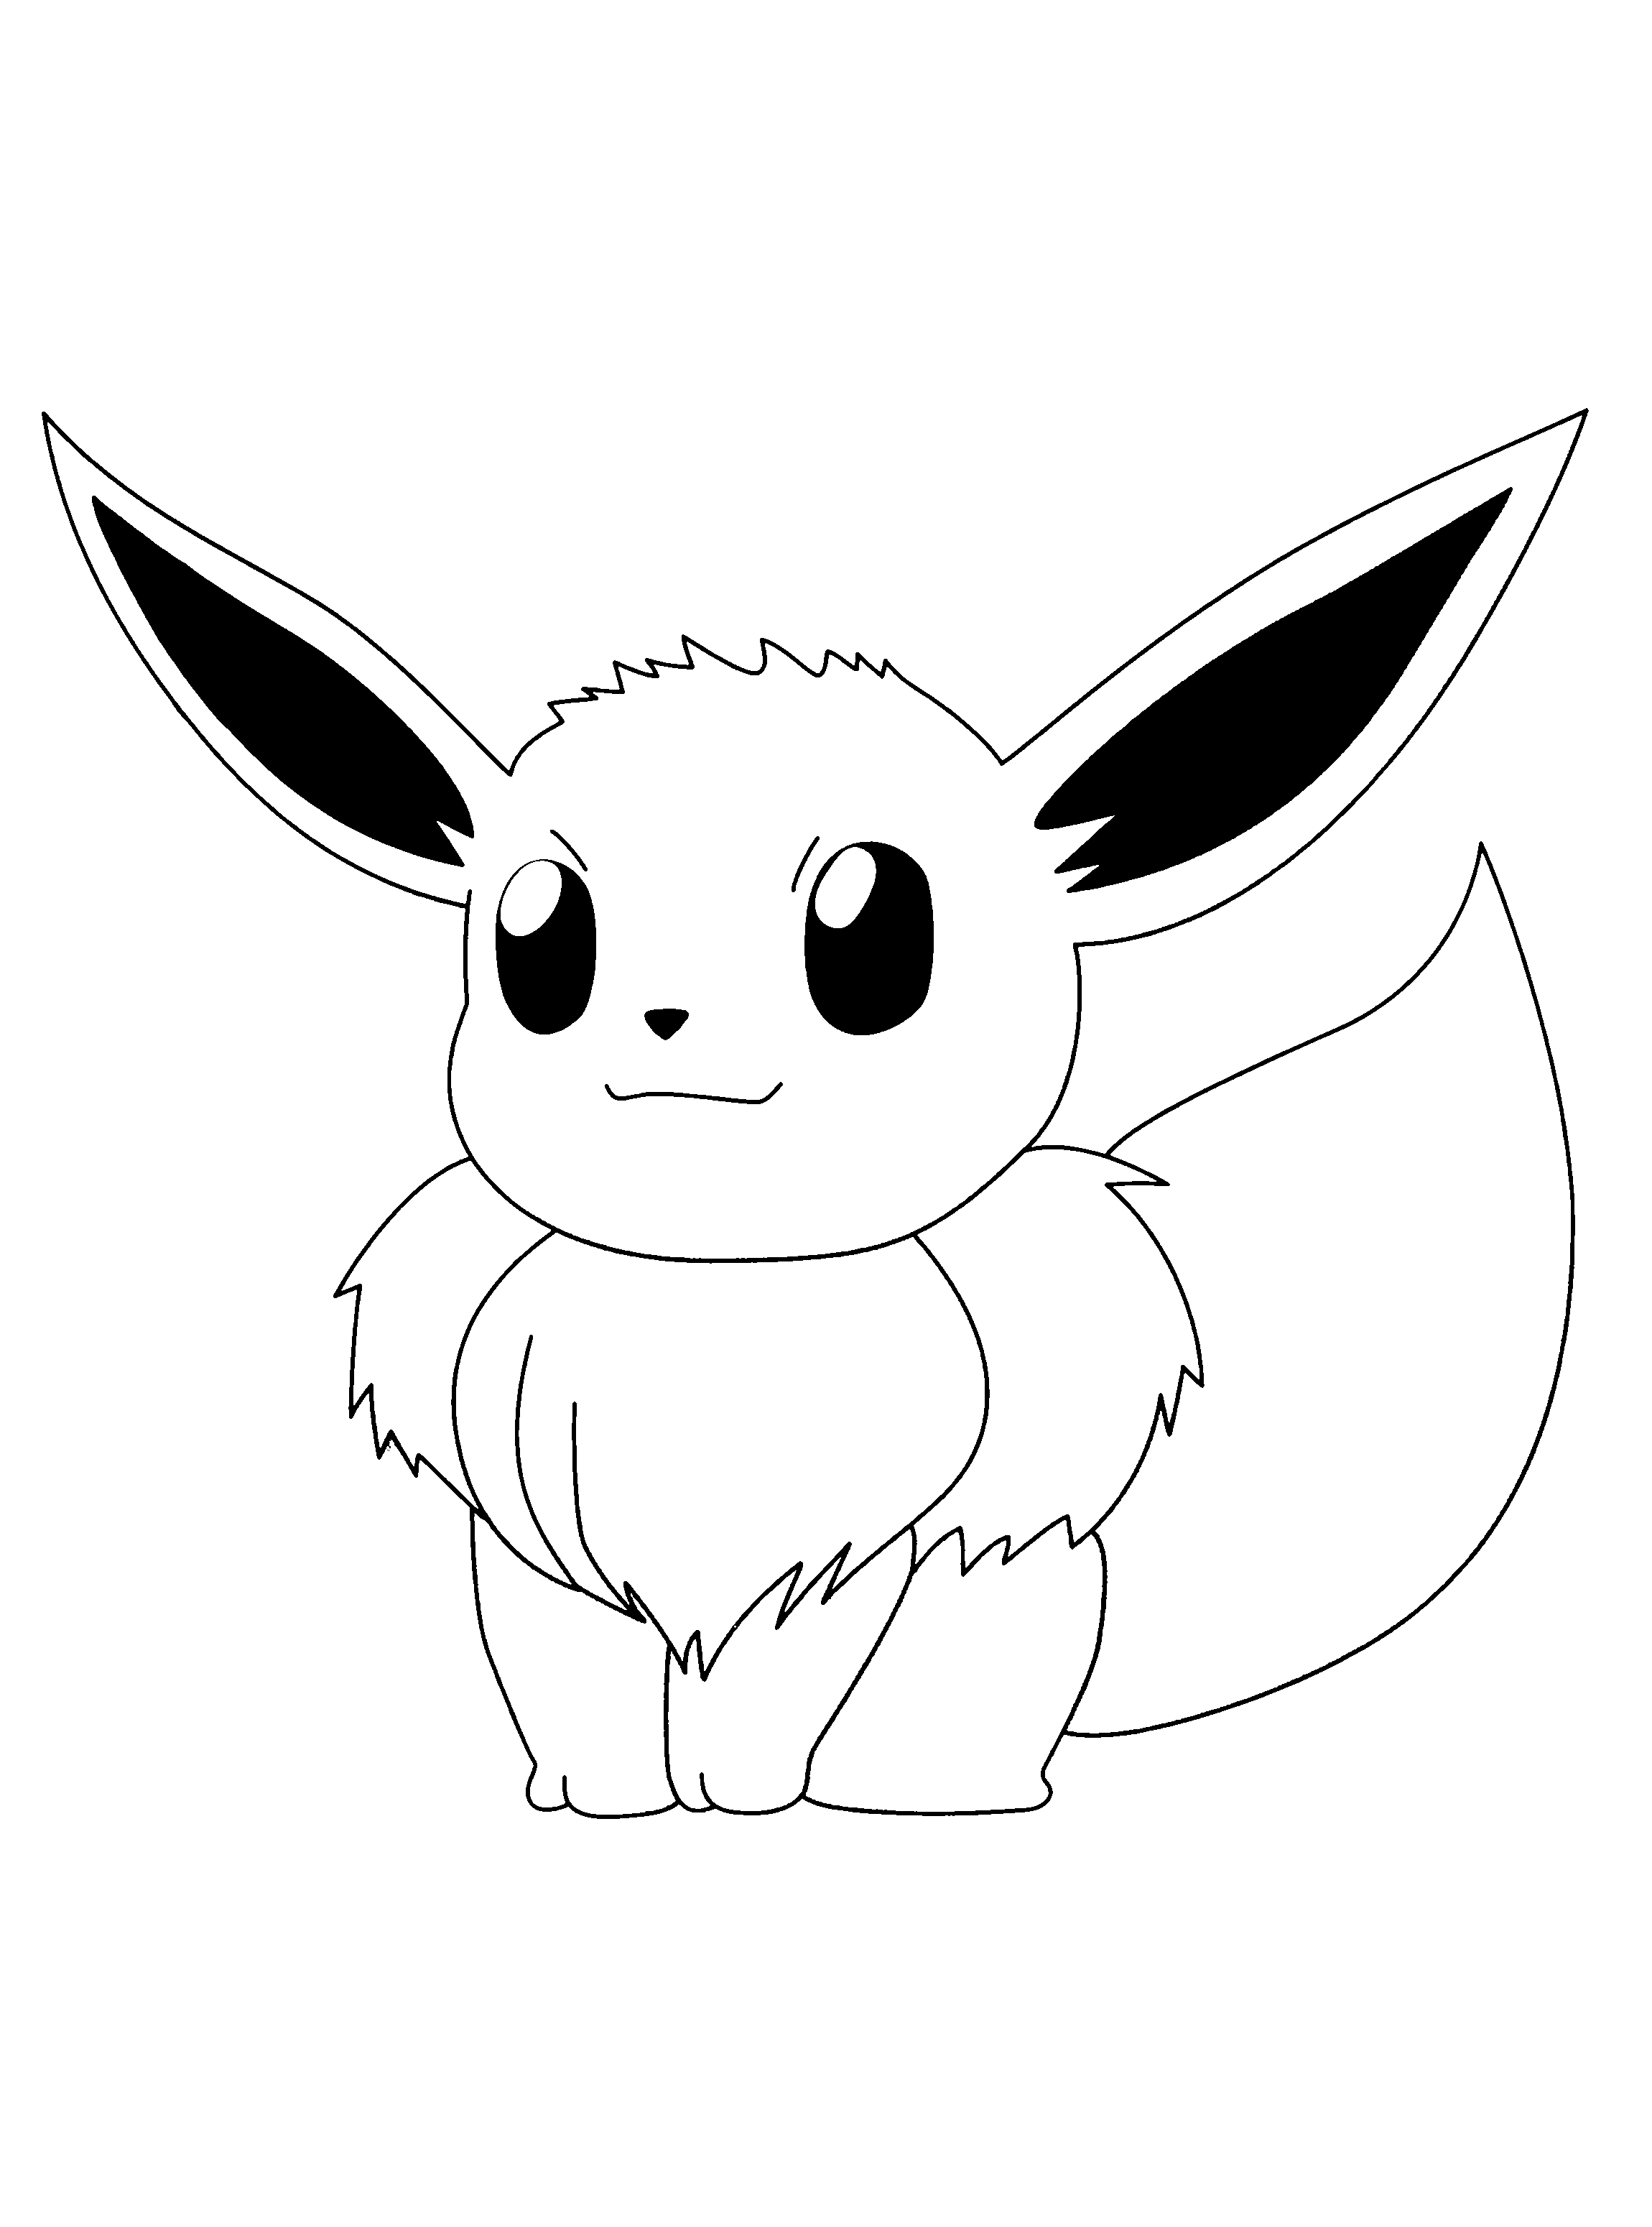 Pokemon Glumanda Ausmalbilder : Pokemon Coloring Pages Colering Page S Pinterest Pokemon